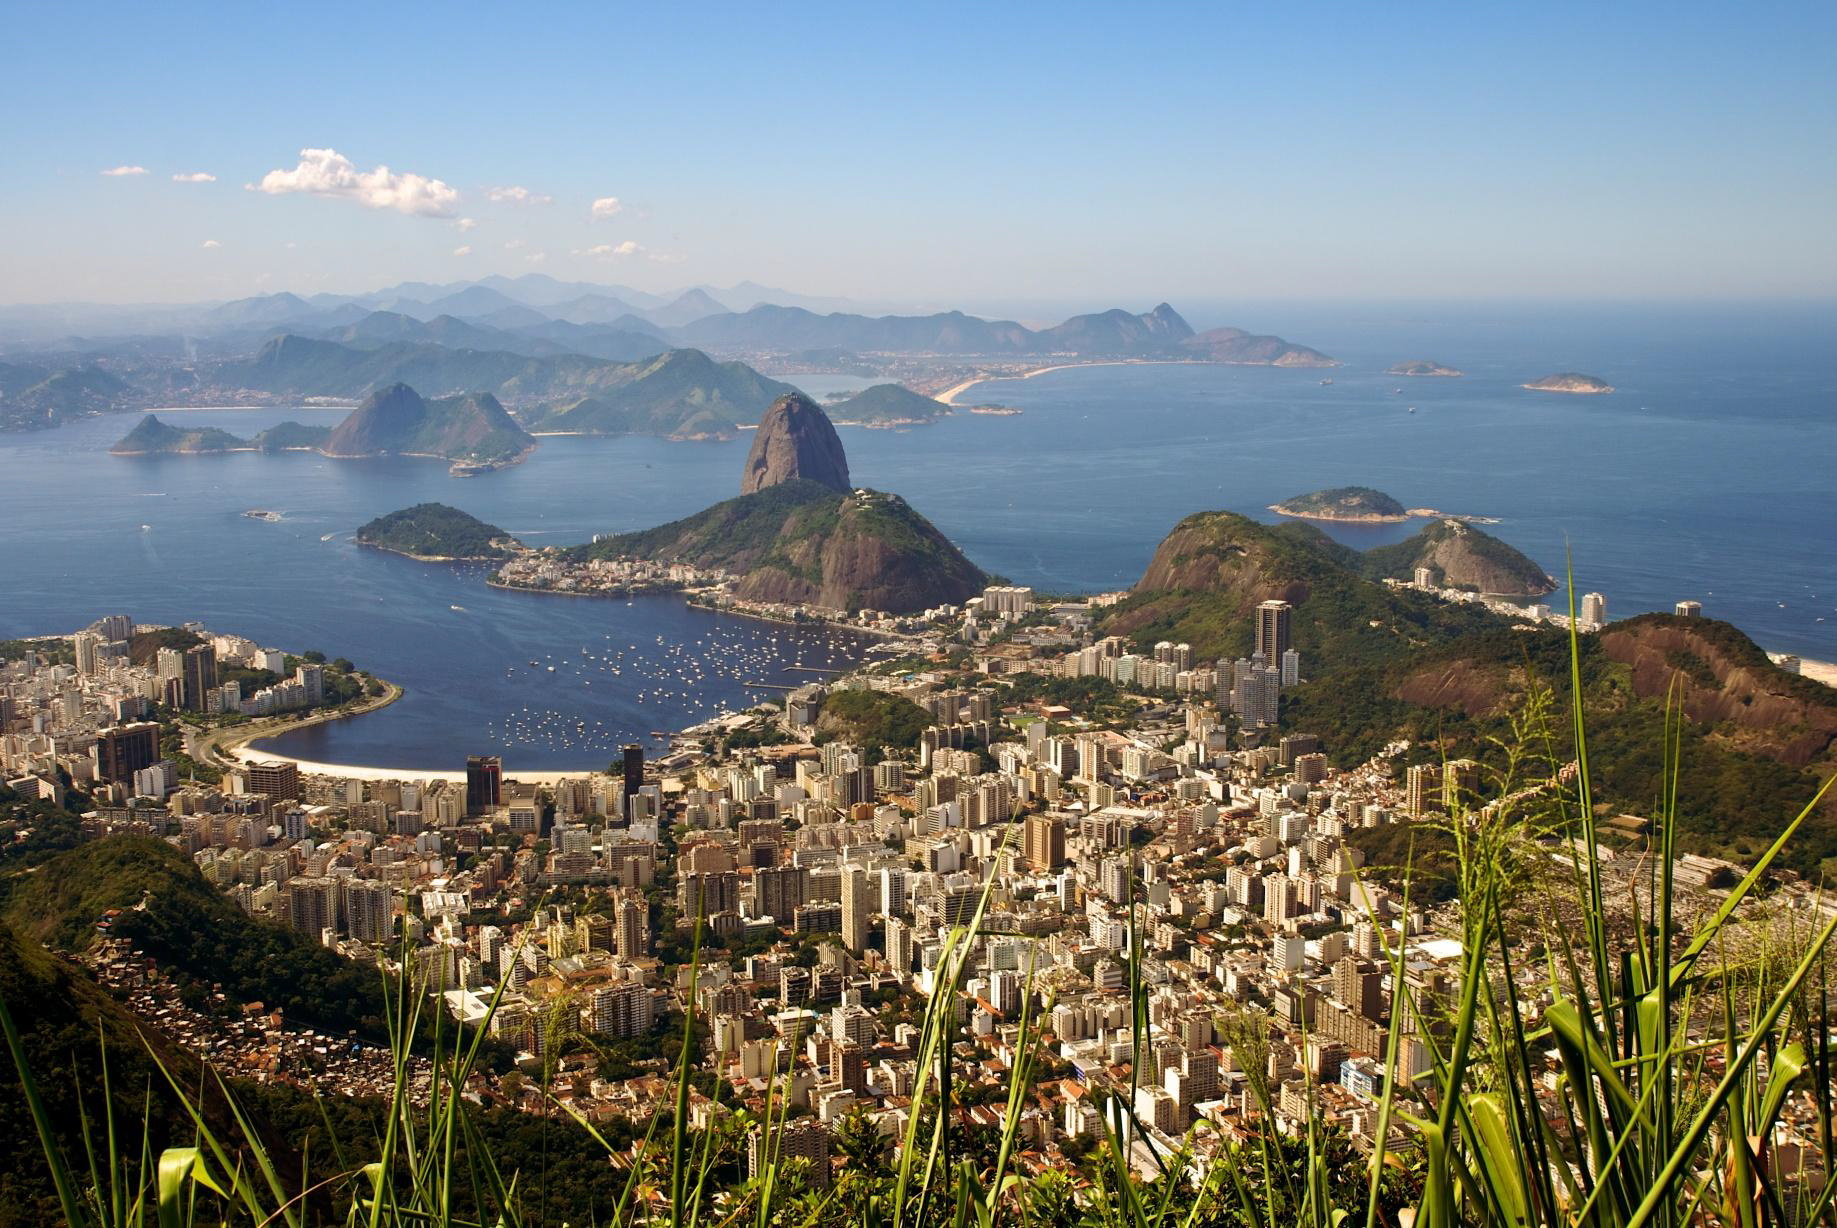 All eyes on Rio: Blessing or curse for local tourism?